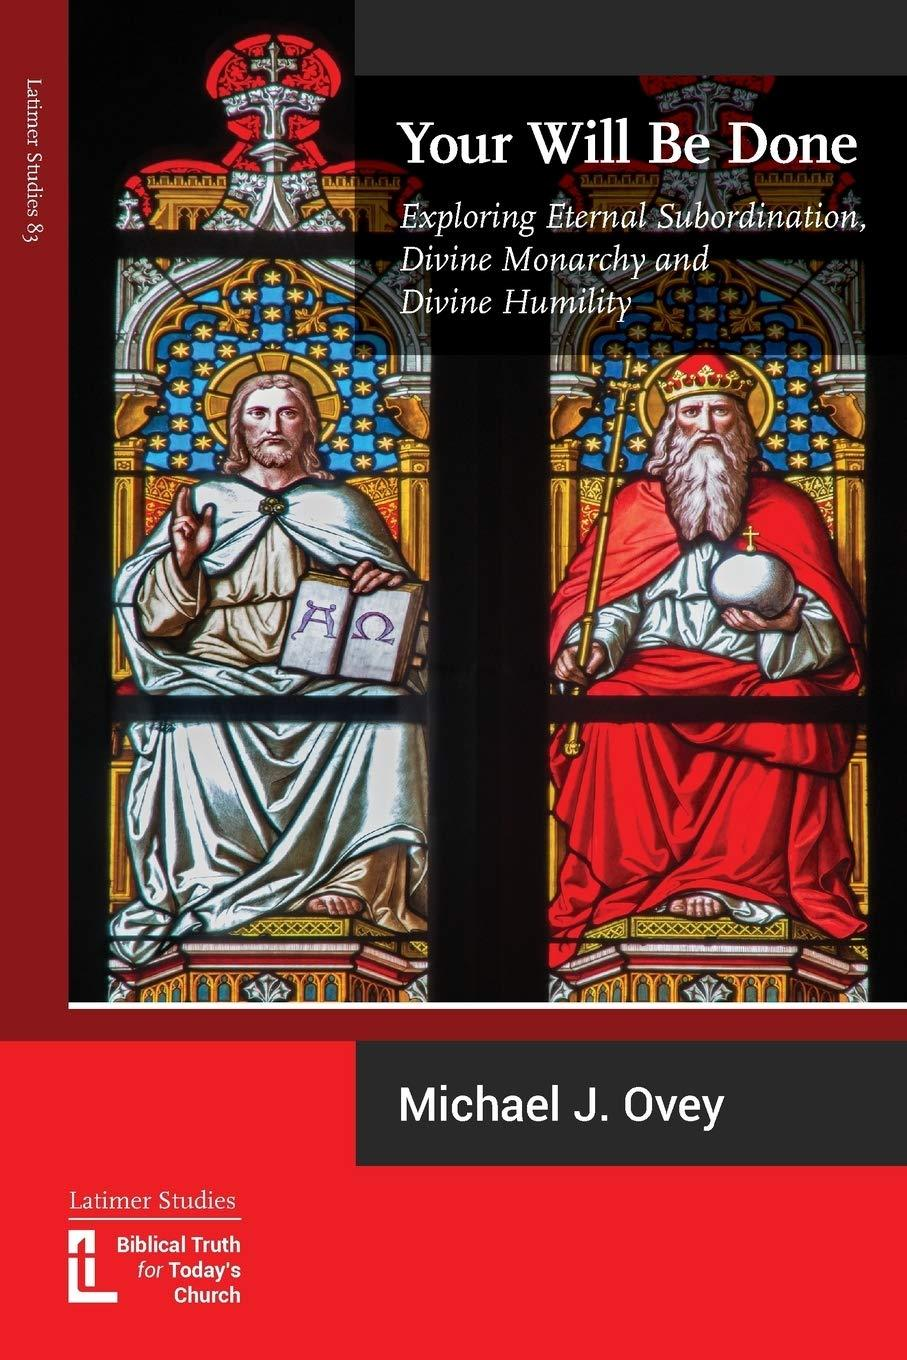 Your Will Be Done: Exploring Eternal Subordination, Divine Monarchy and Divine Humility by Michael J Ovey, ISBN: 9781906327408